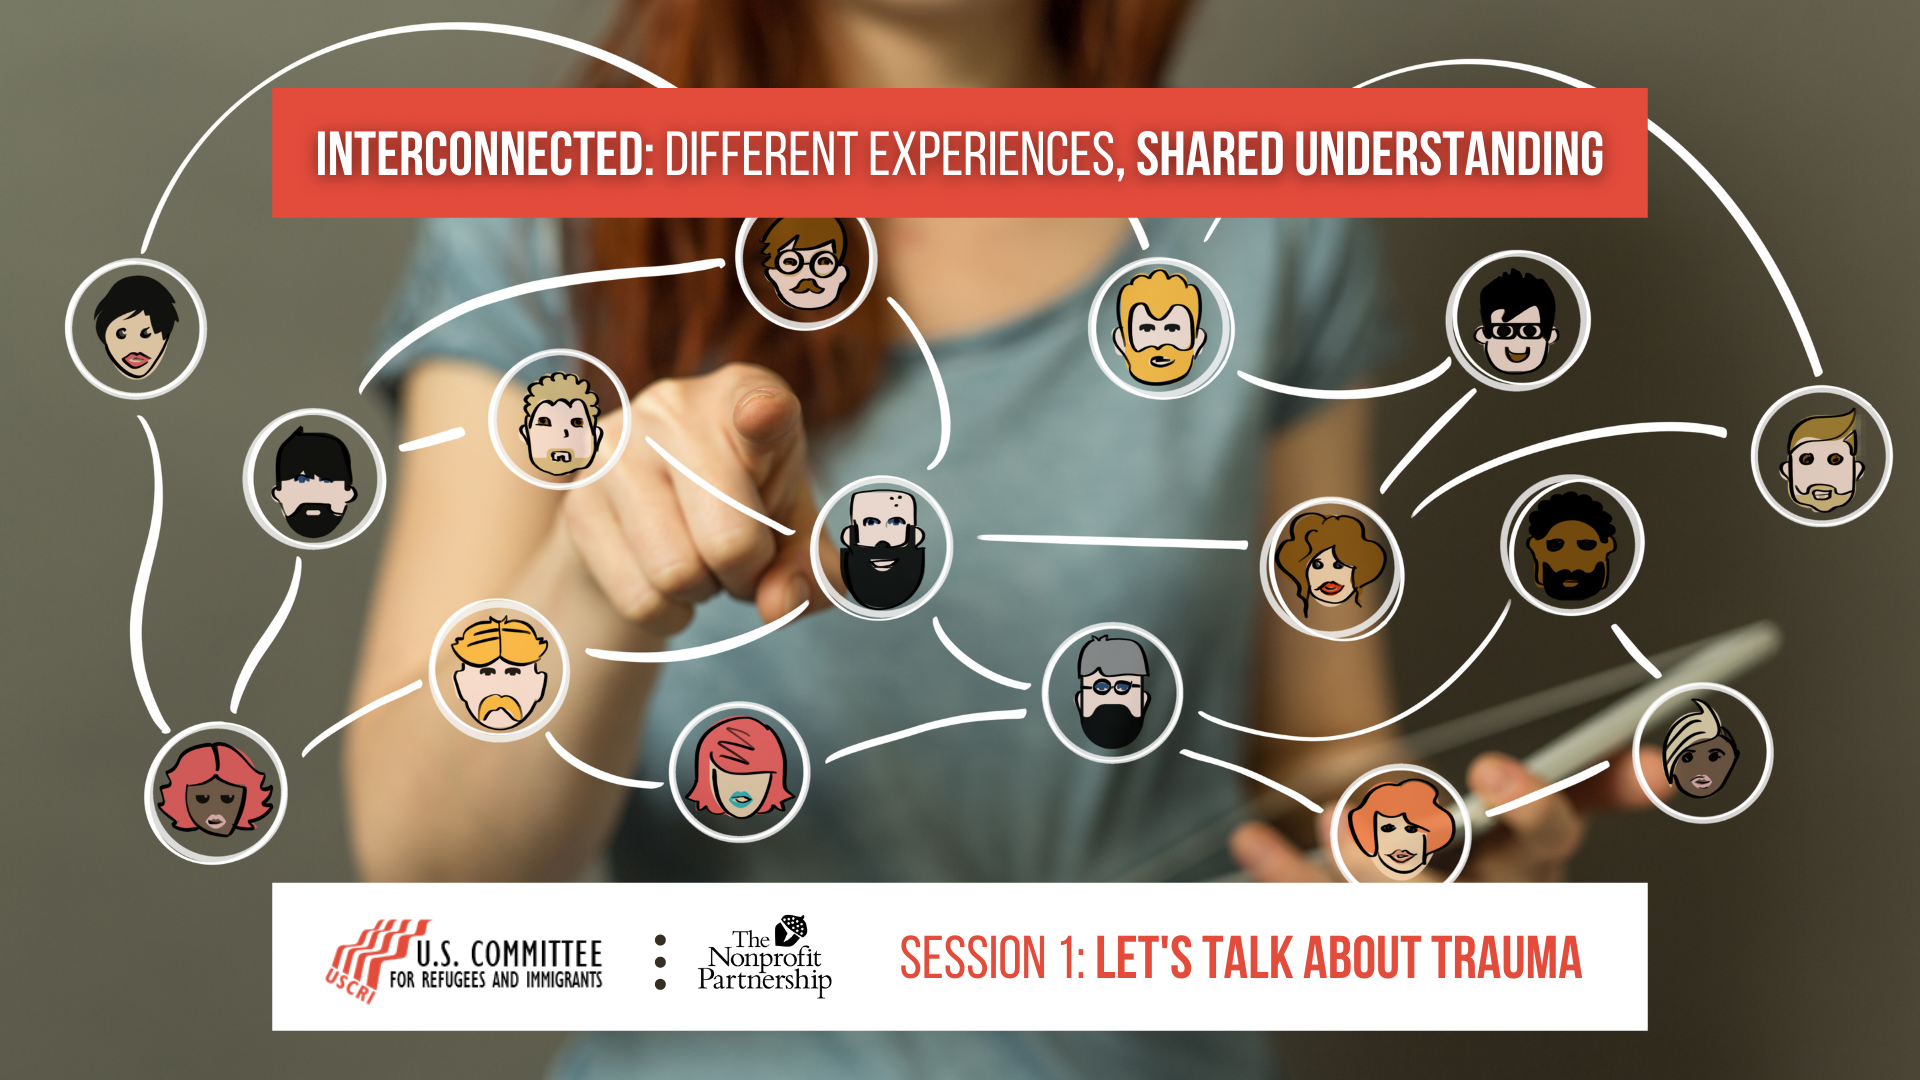 [Zoom Meeting] Interconnected: Different Experiences, Shared Understanding - Let's Talk About Trauma